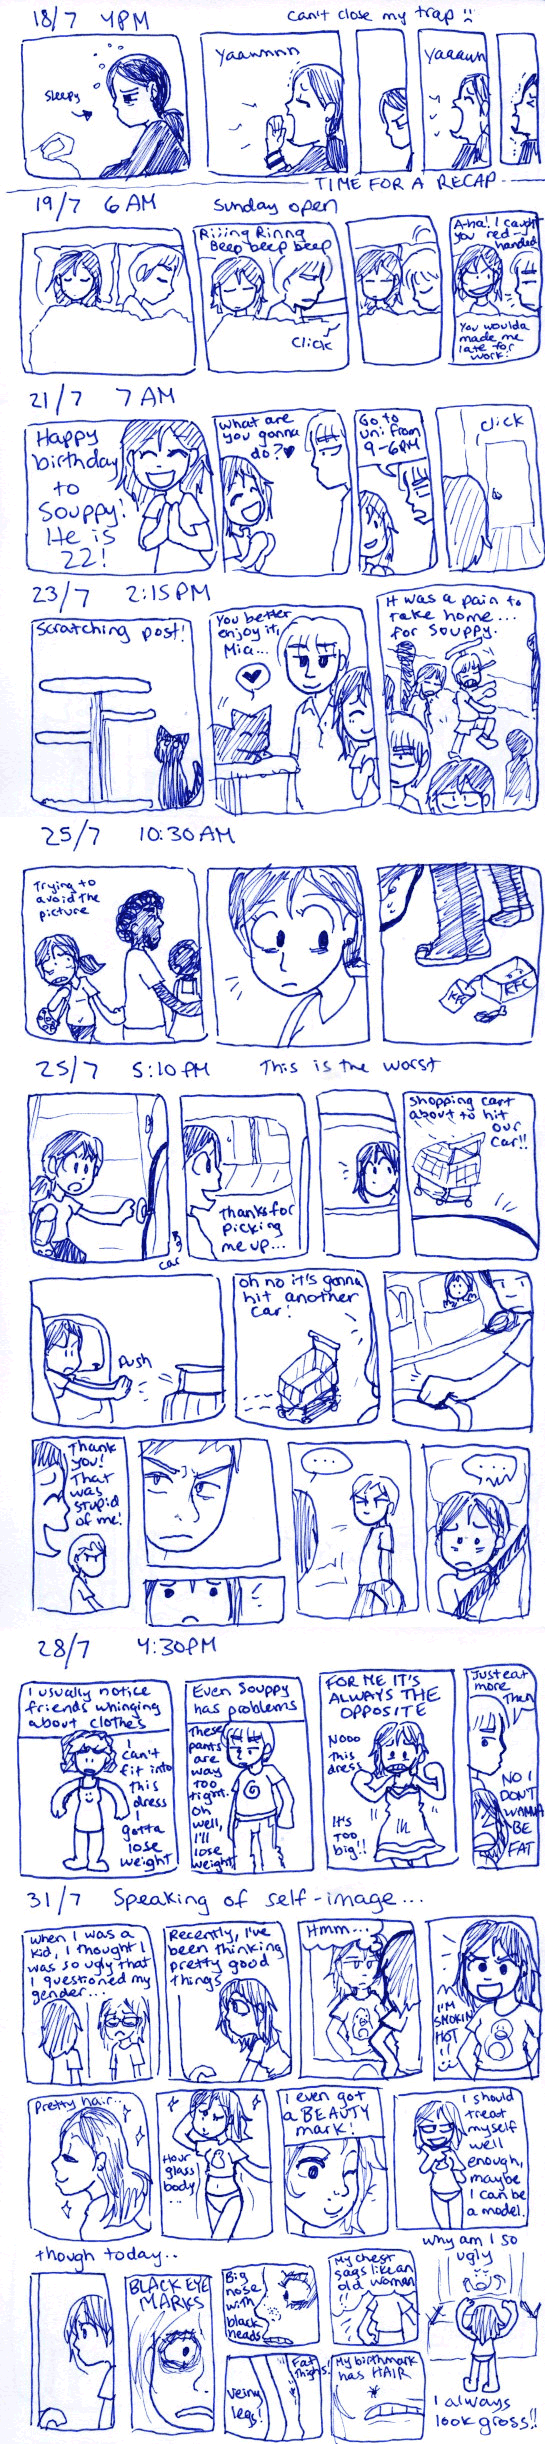 2009 Diary Comic - July. by taeshilh